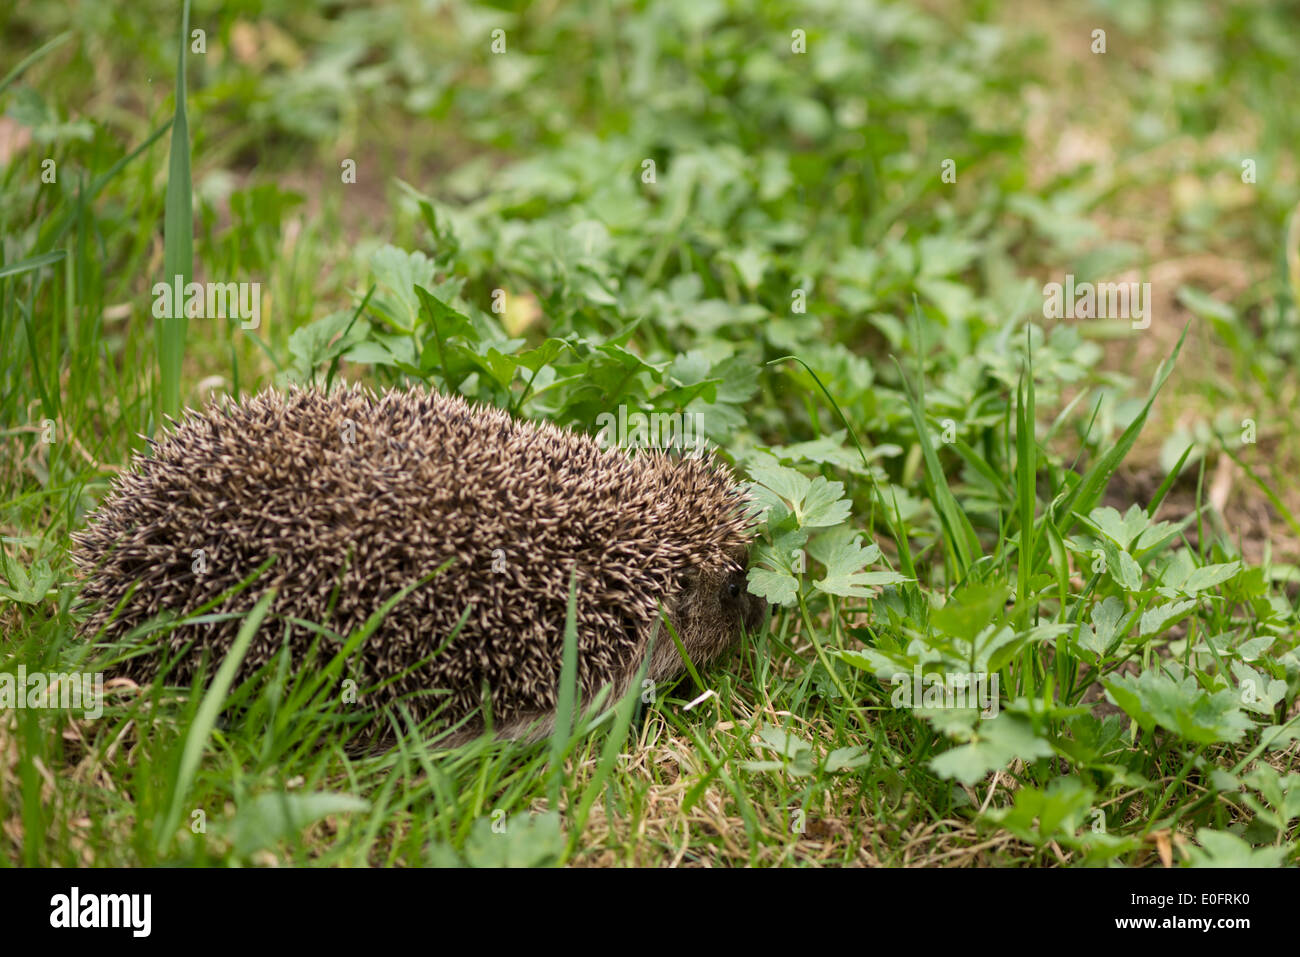 European hedgehog among green grass - Stock Image